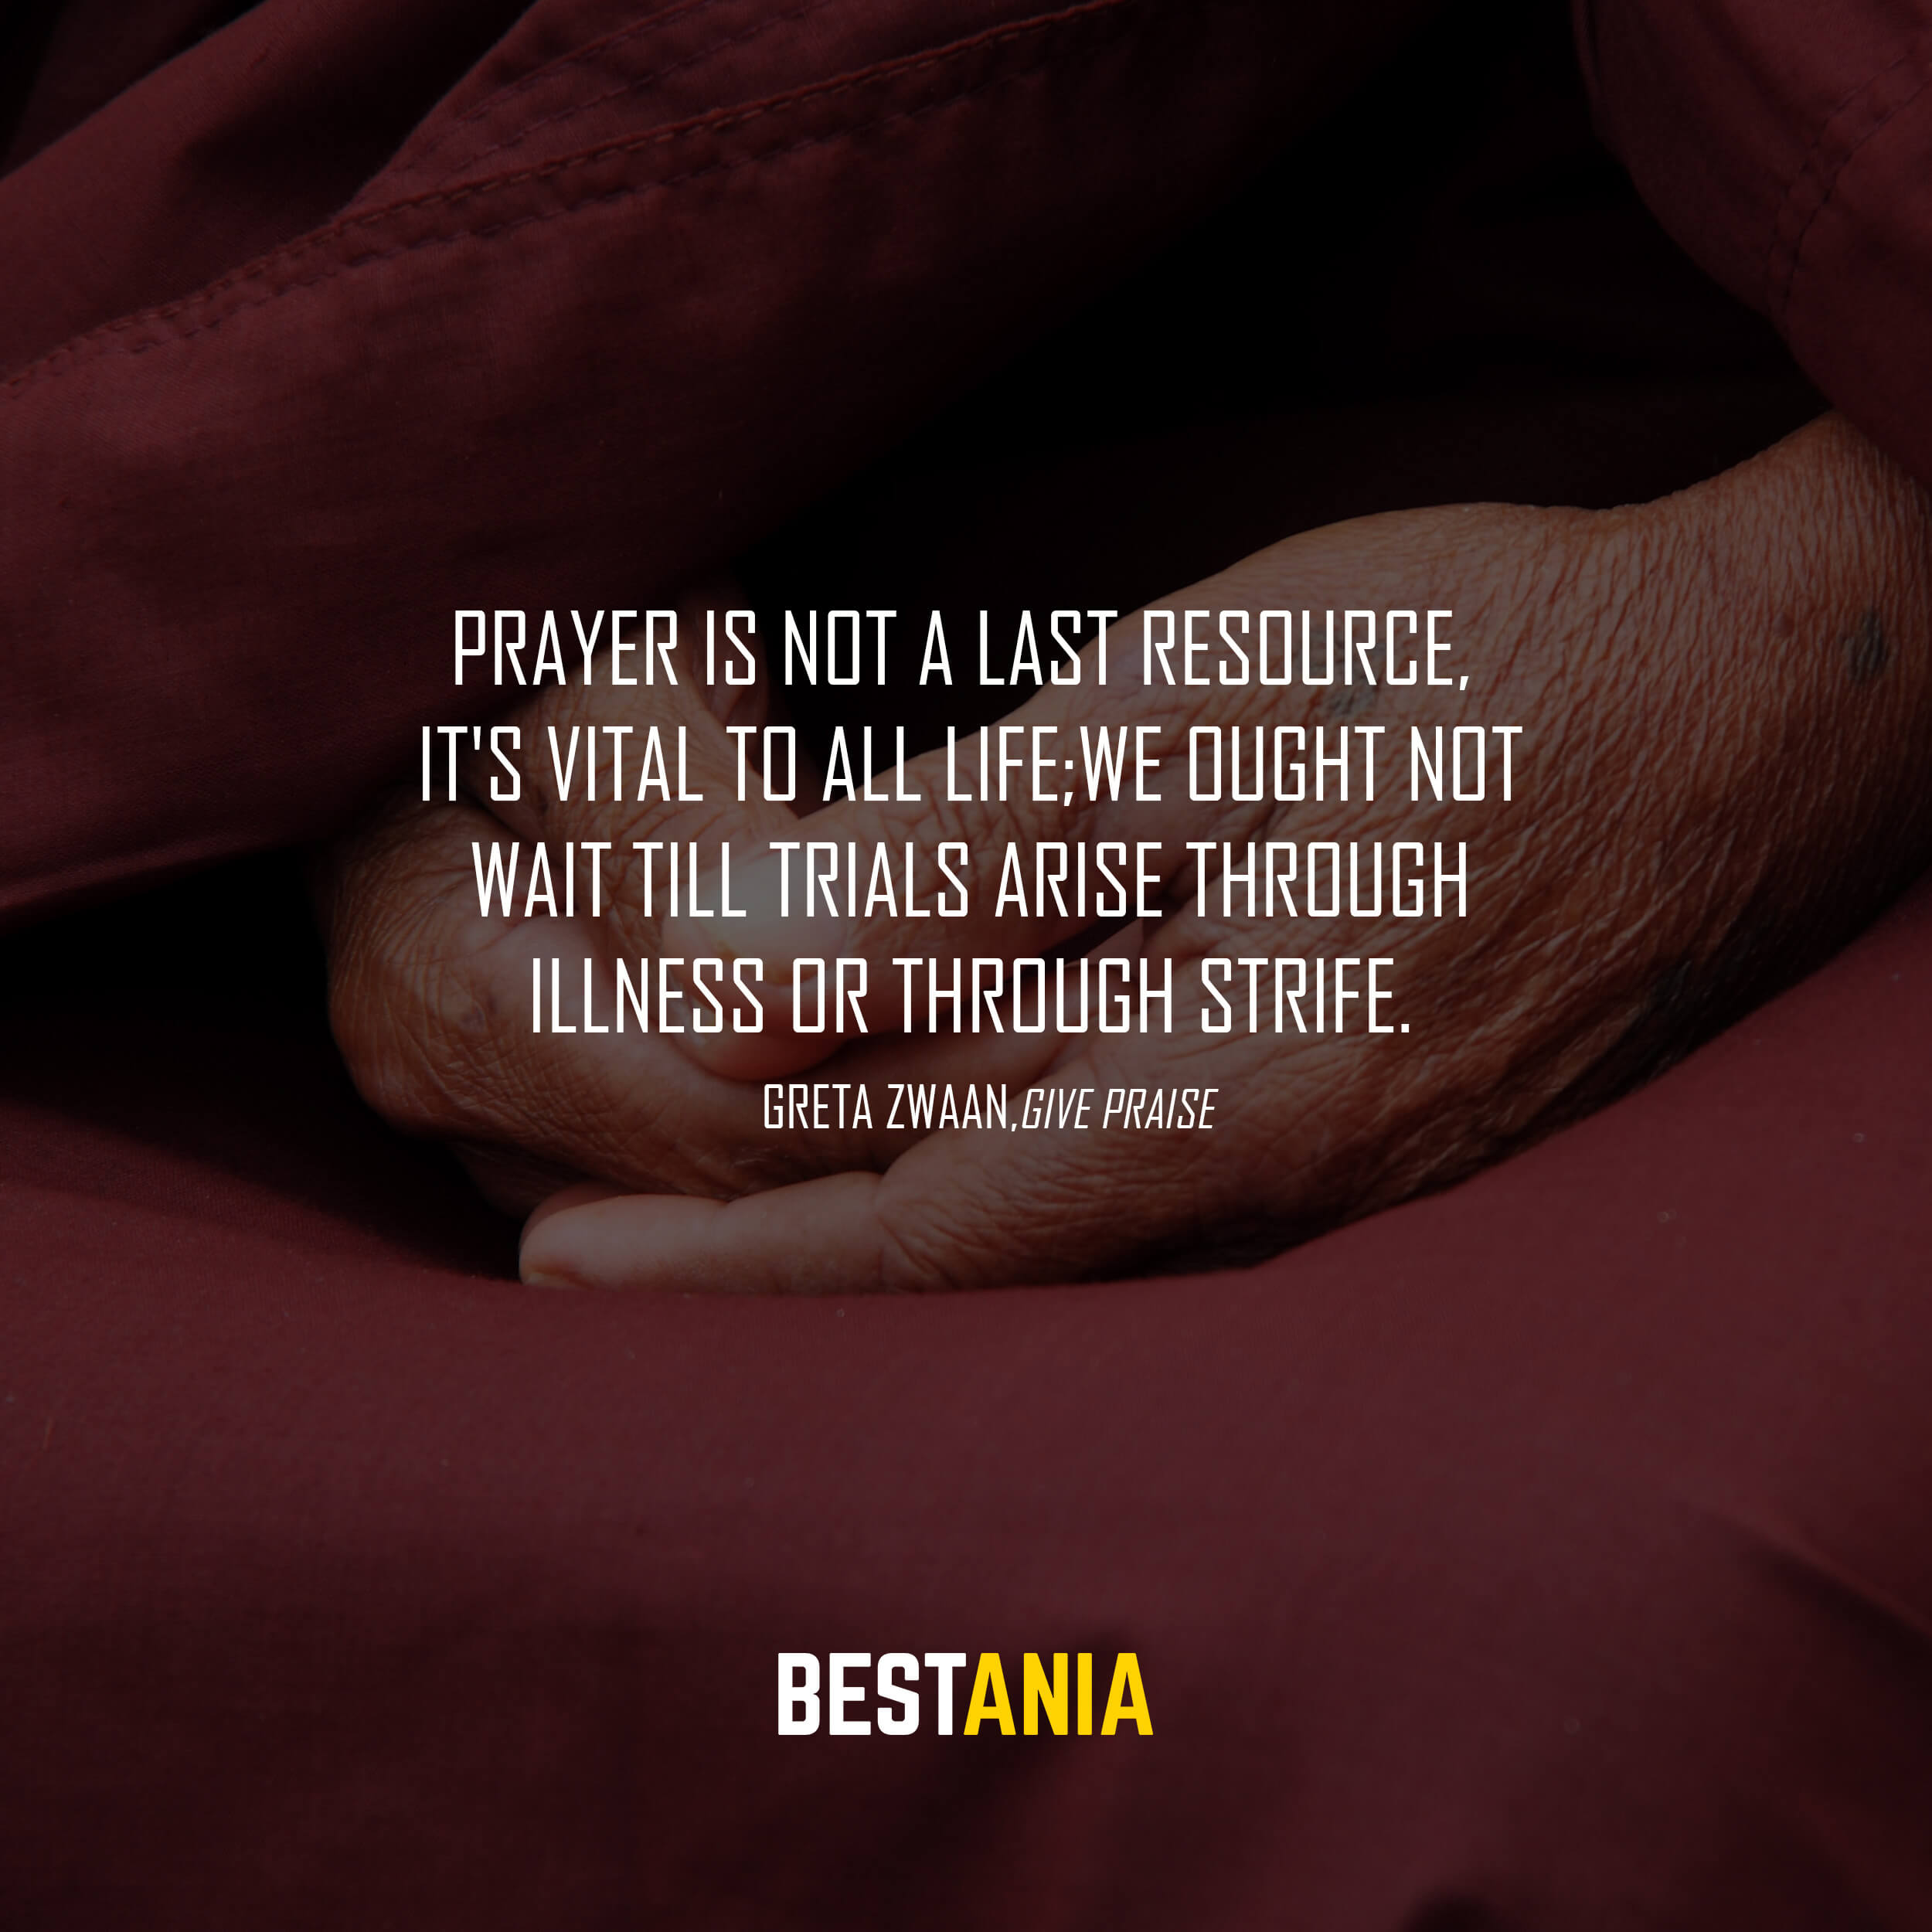 Prayer is not a last resource, it's vital to all life; We ought not wait till trials arise through illness or through strife. Greta Zwaan,Give Praise